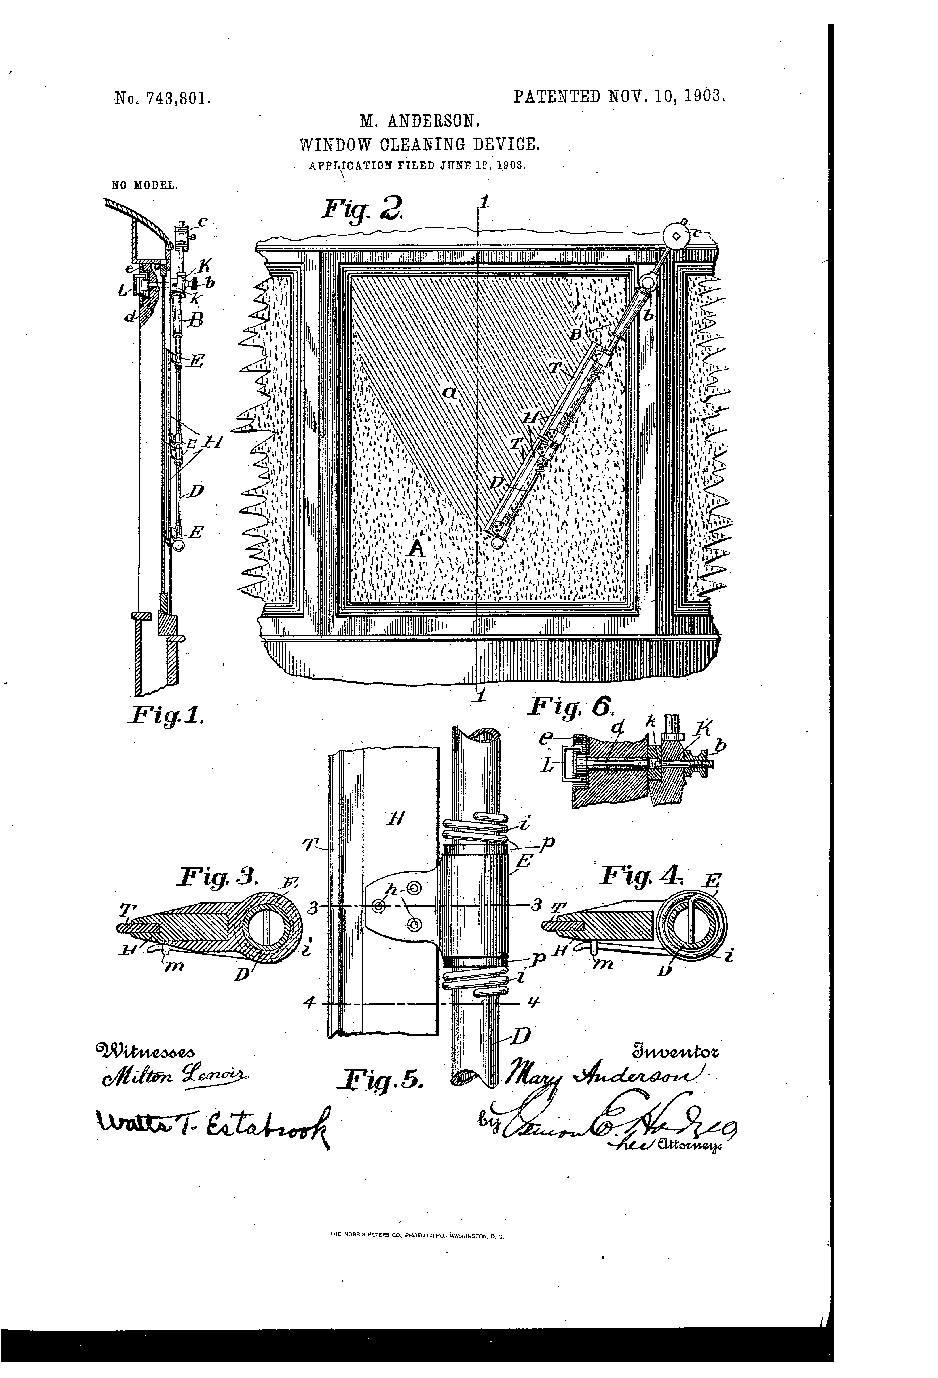 Mary Anderson's original 1903 wiper design  Source:  https://upload.wikimedia.org/wikipedia/commons/8/8c/Anderson_Window_Cleaning_Device_1903.png